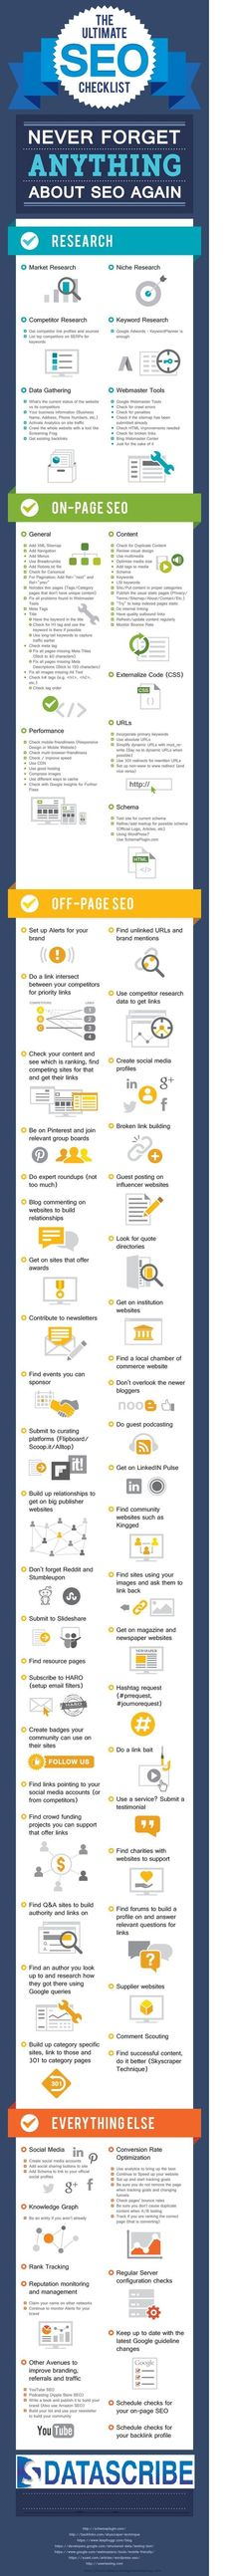 Use this #SEO #Checklist to ensure your site is well optimized for #search #engines. If you're just getting started with optimizing sites, here's a handy #SEO checklist you can keep on hand during your projects. for more details on seo visit us @ http://datascribedigitalmarketing.com/seo-services/